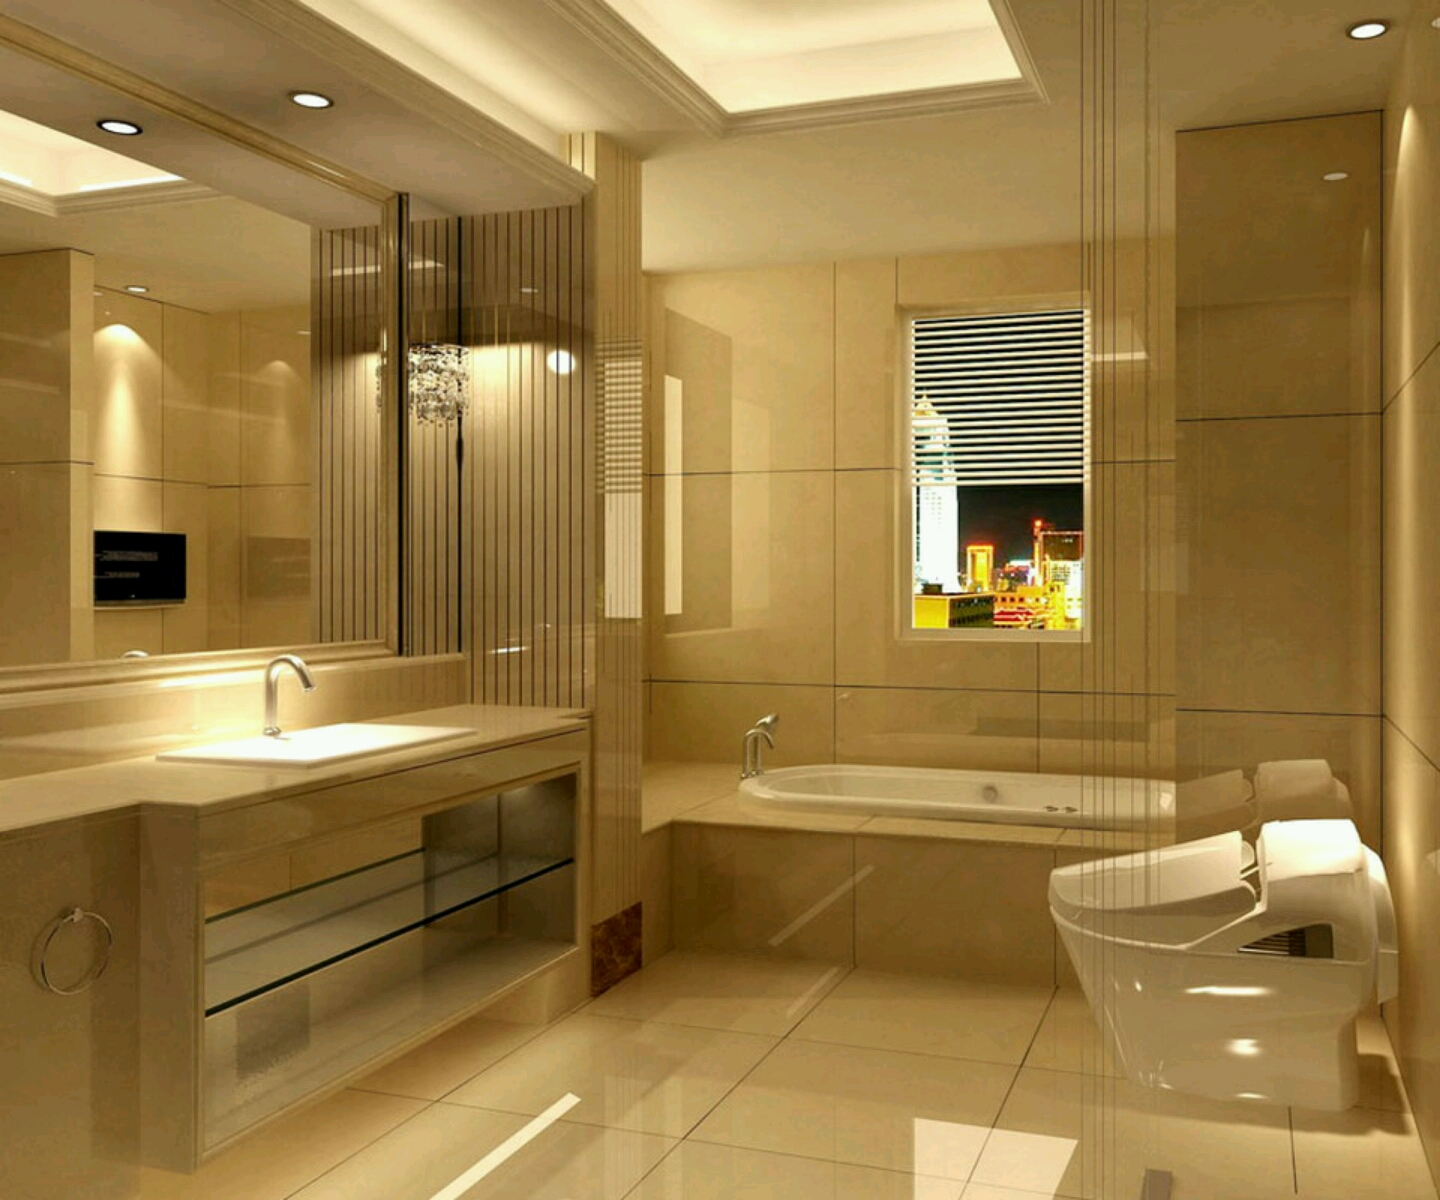 Modern bathrooms setting ideas furniture gallery for Contemporary bathroom design ideas